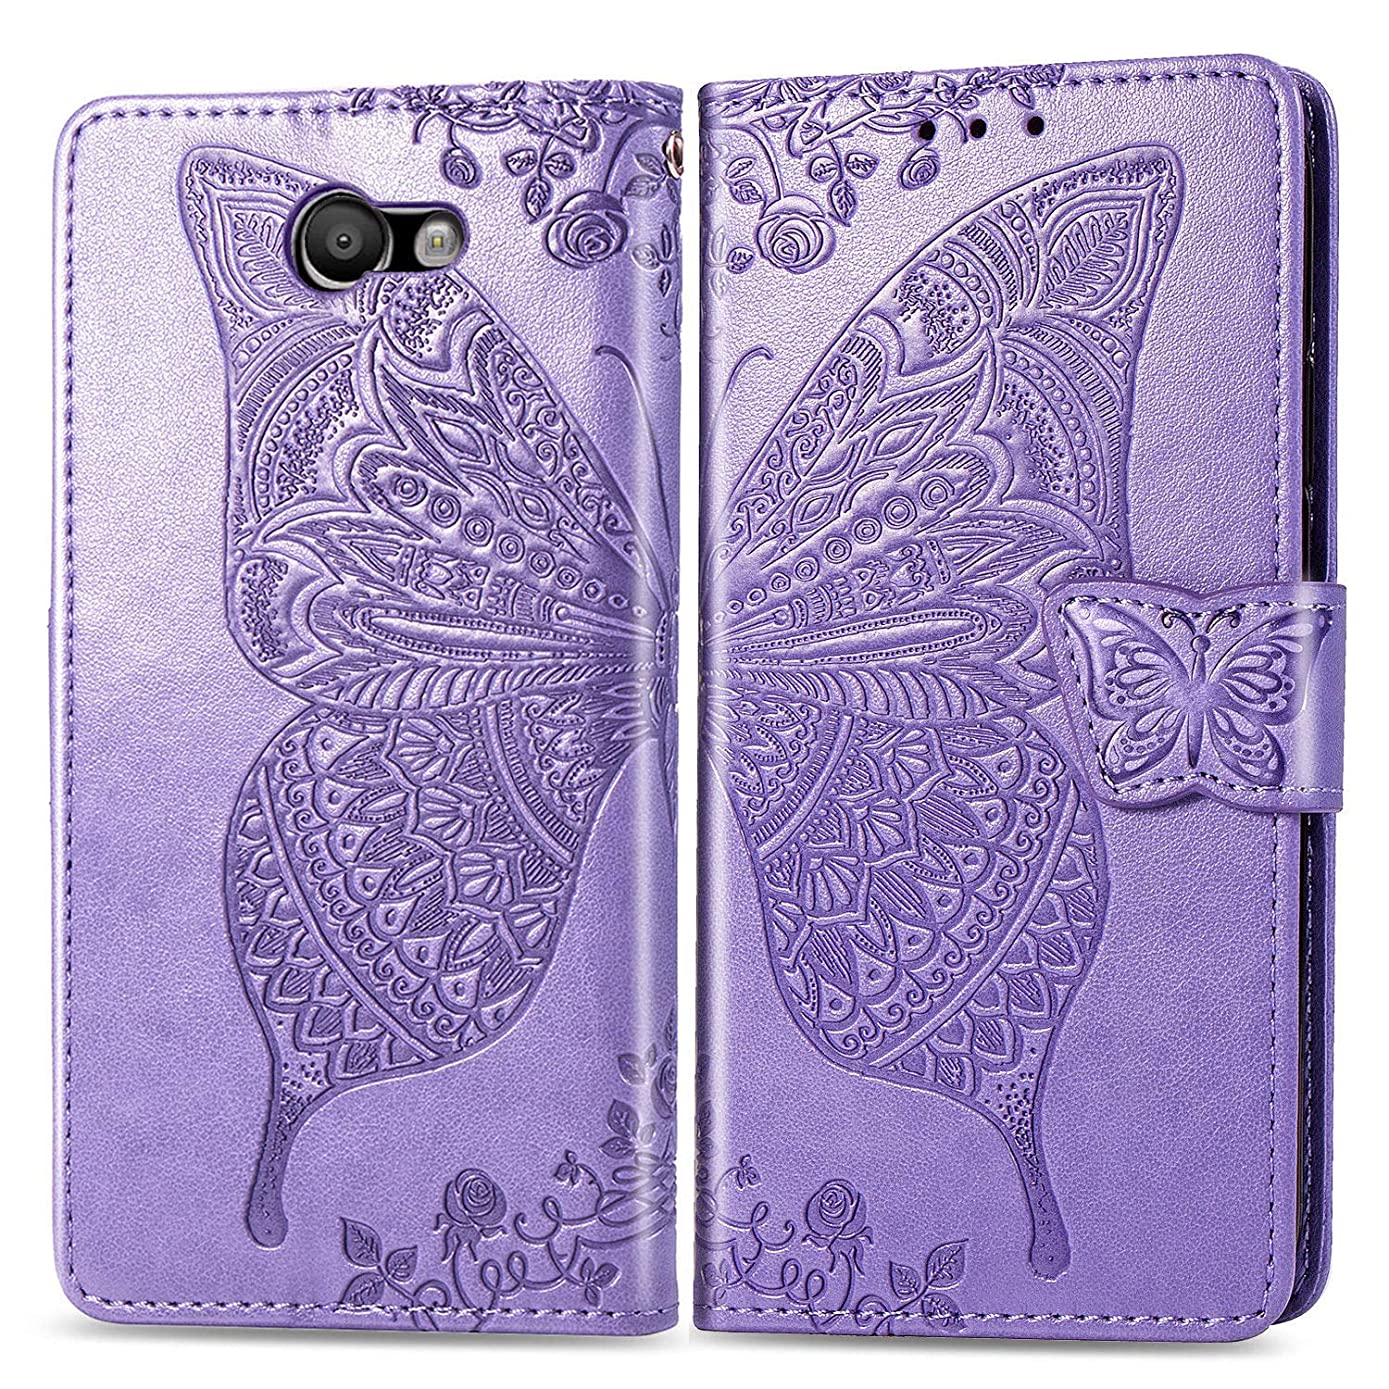 Galaxy J7 2017,J7 Prime,J7 V Wallet Case, [Butterfly & Flower Embossed] Premium PU Leather Wallet Flip Protective Phone Case Cover with Card Slots and Stand for Samsung Galaxy J7 2017 (Lavender)